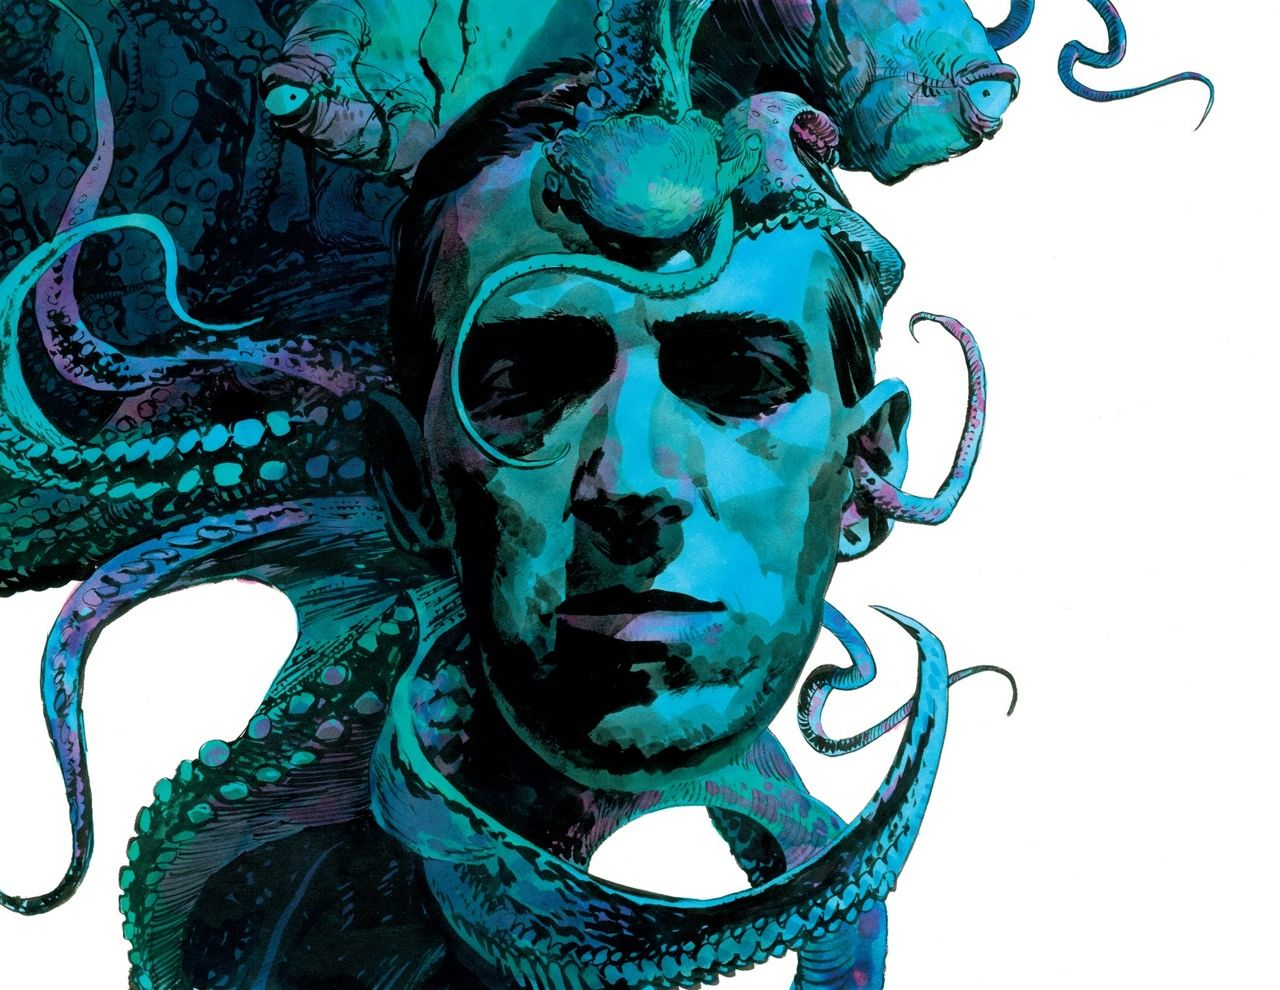 What is the meaning/theme of the haunter of the dark by HP lovecraft?